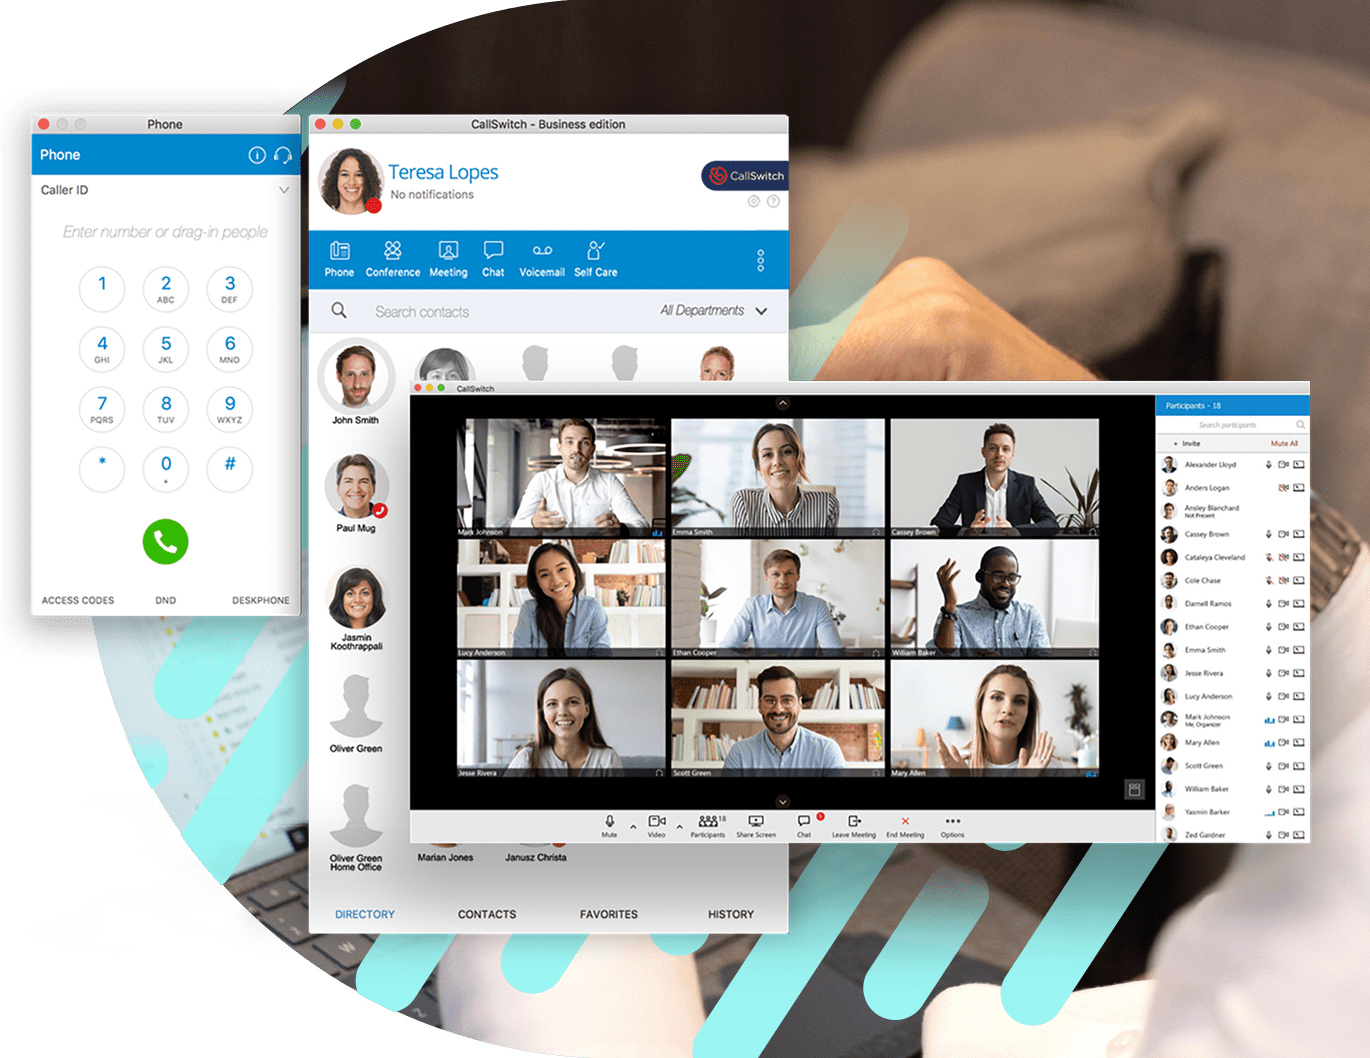 CallSwitch Business unified communication solution software